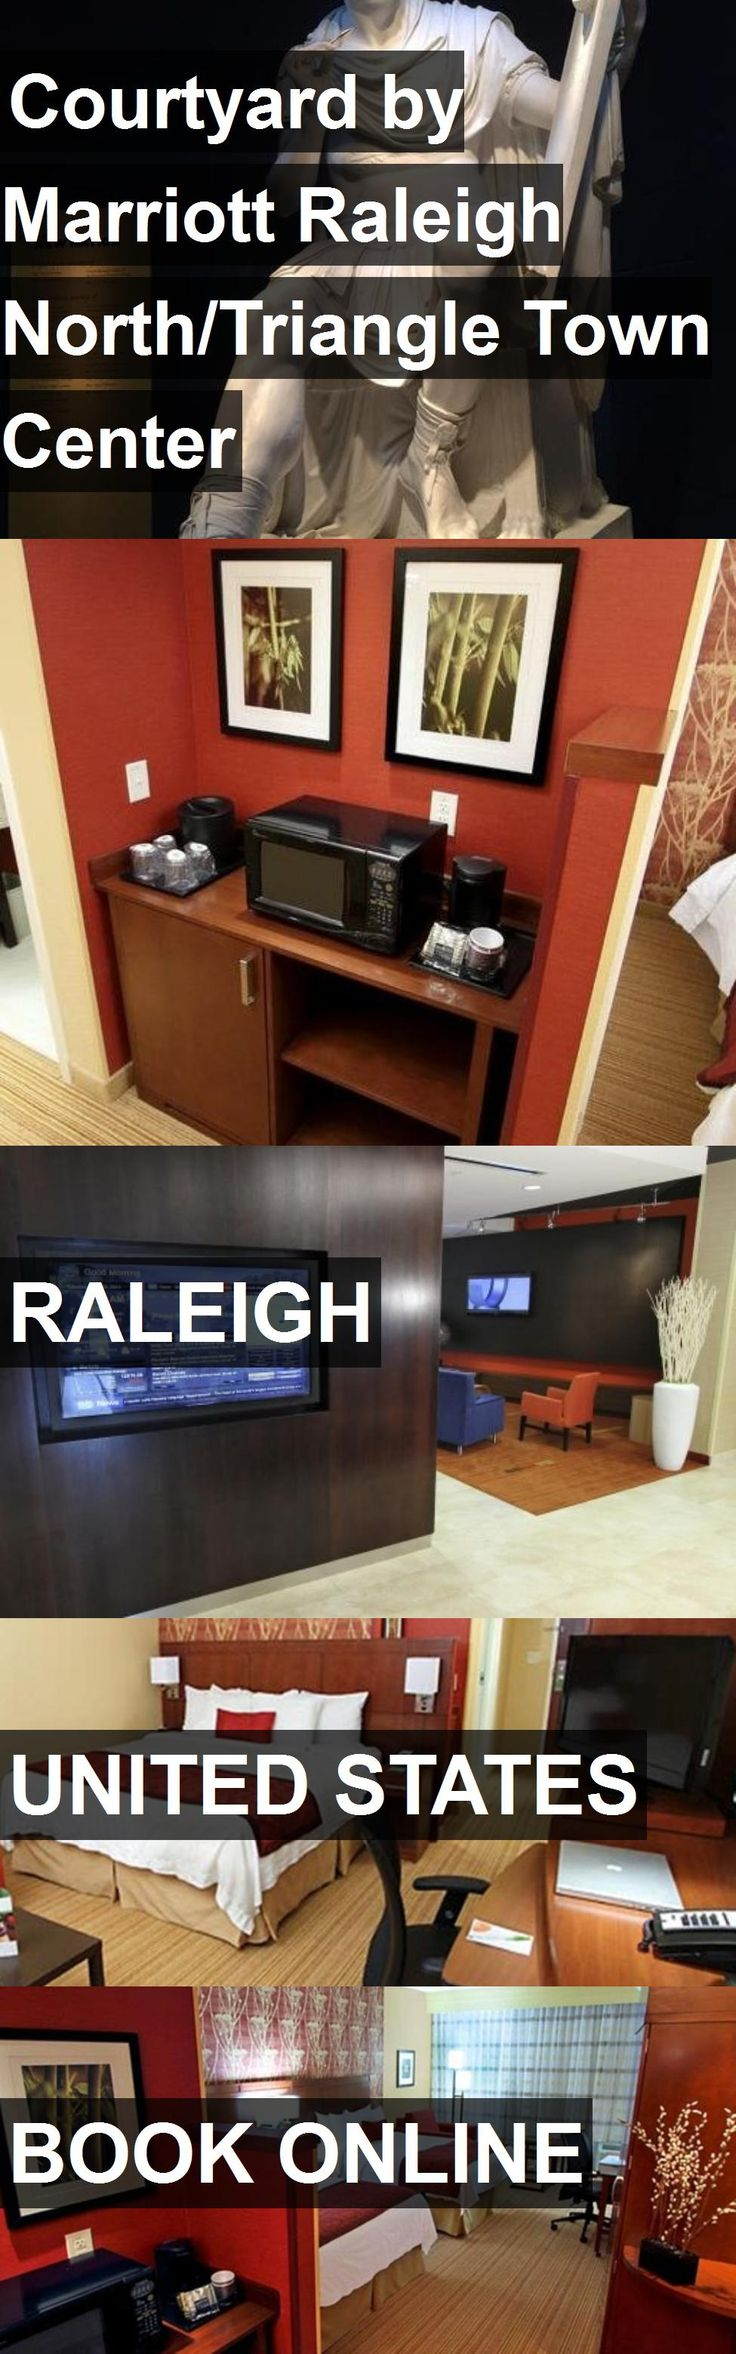 Hotel Courtyard by Marriott Raleigh North/Triangle Town Center in Raleigh, United States. For more information, photos, reviews and best prices please follow the link. #UnitedStates #Raleigh #travel #vacation #hotel